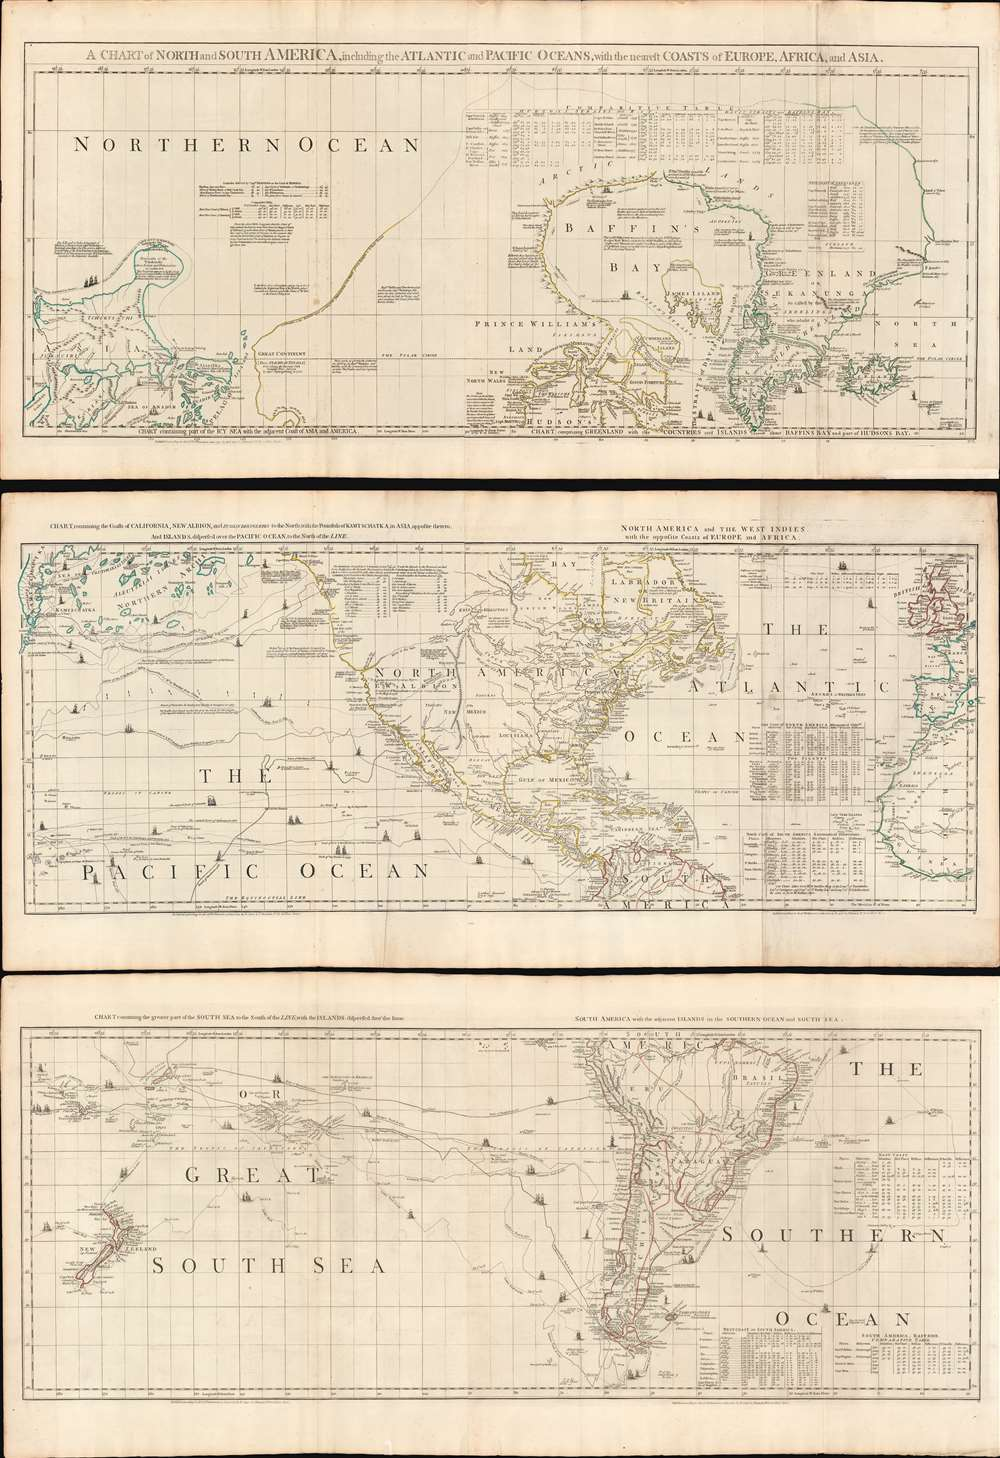 A Chart of North and South America, including the Atlantic and Pacific Oceans, with the nearest Coasts of Europe, Africa, and Asia. - Main View